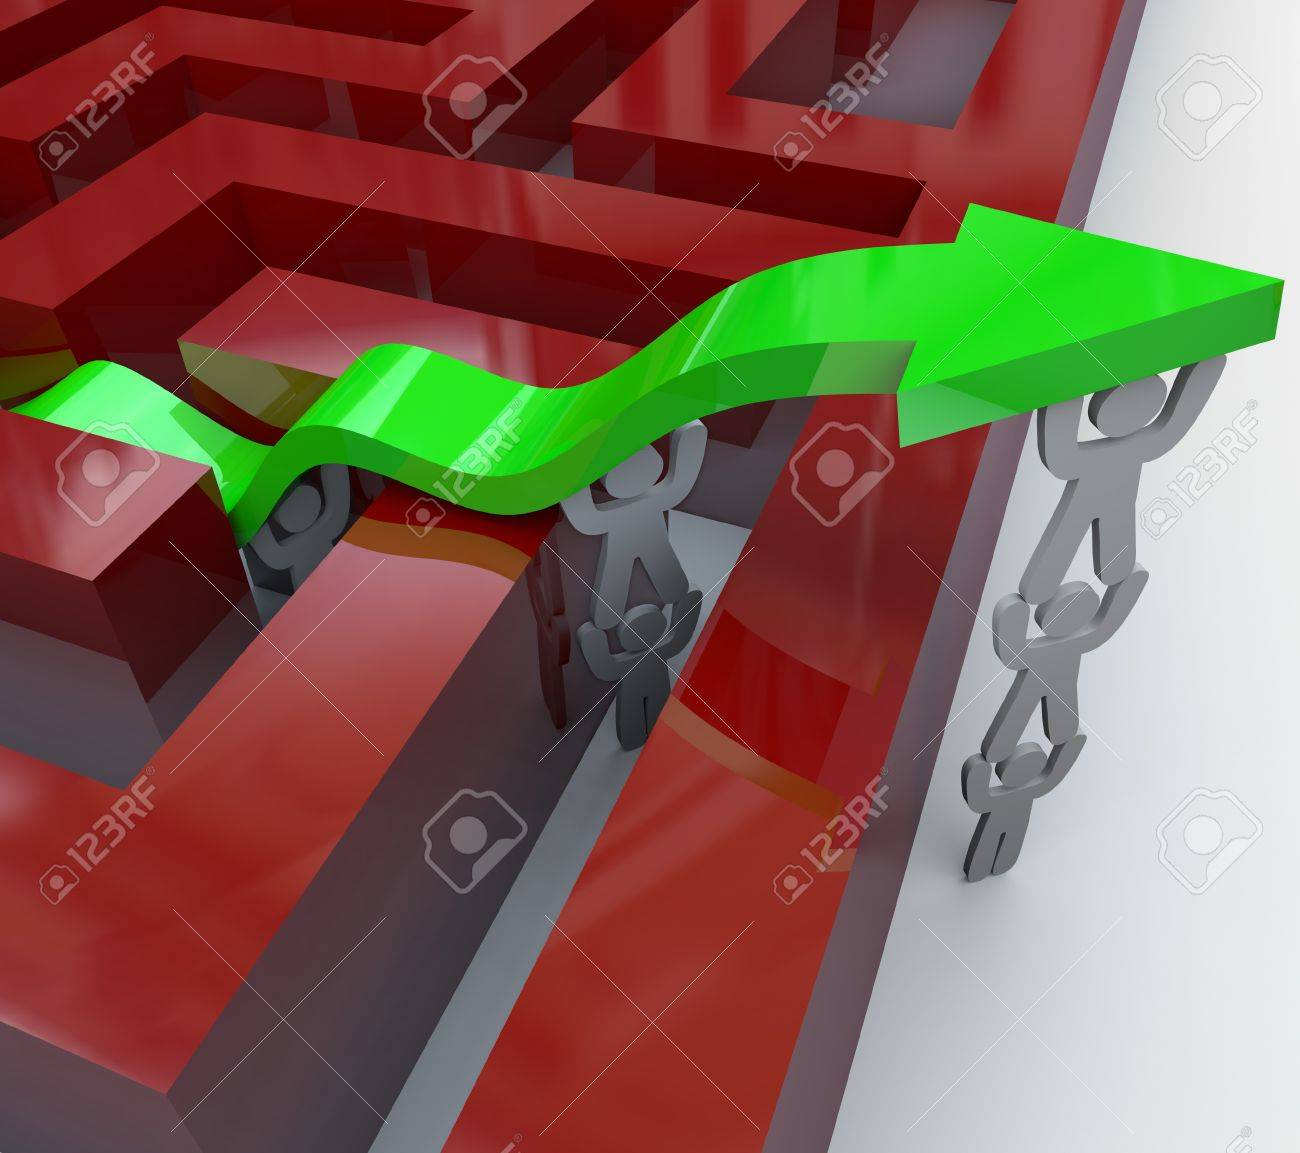 Several figures team up to push up a green arrow over the walls of a maze, symbolizing teamwork and growth Stock Photo - 8466564